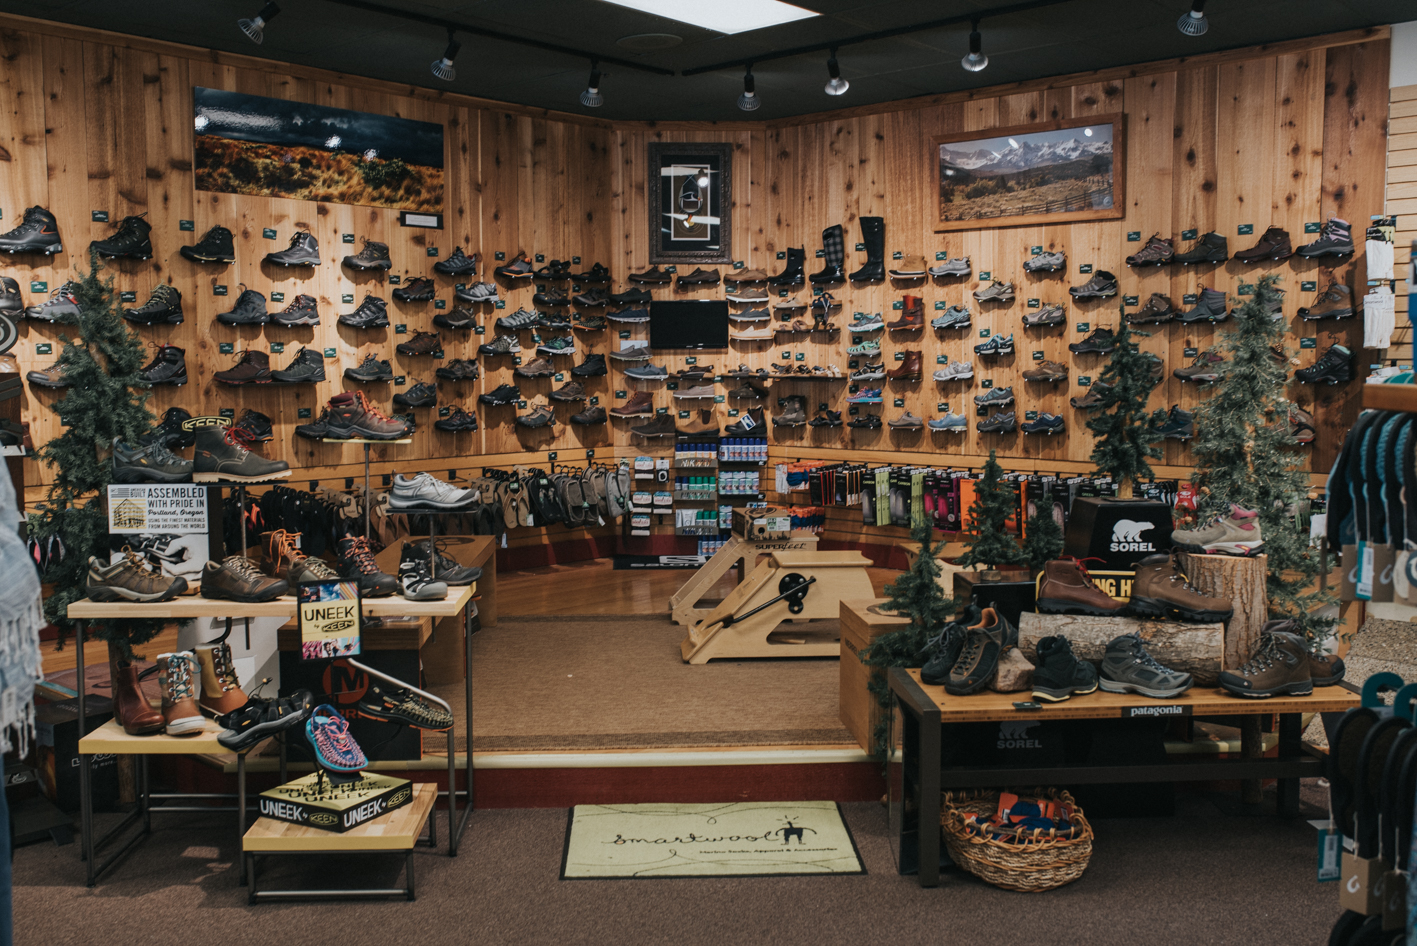 Located in Blue Ash, Benchmark Outdoor Outfitters sells outdoor clothing, hiking & camping paraphernalia, climbing gear, and much more. Whether you're a seasoned vet on the trails or a newbie, the knowledgeable staff is eager & ready to help you plan that next big adventure. ADDRESS: 9525 Kenwood Rd. (45242) / Image: Brianna Long // Published 5.27.17